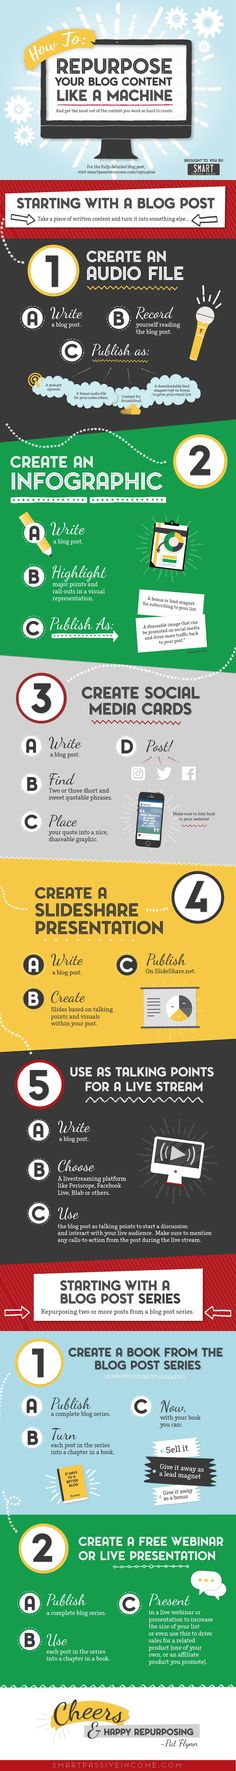 How to Repurpose Your Blog Content - infographic